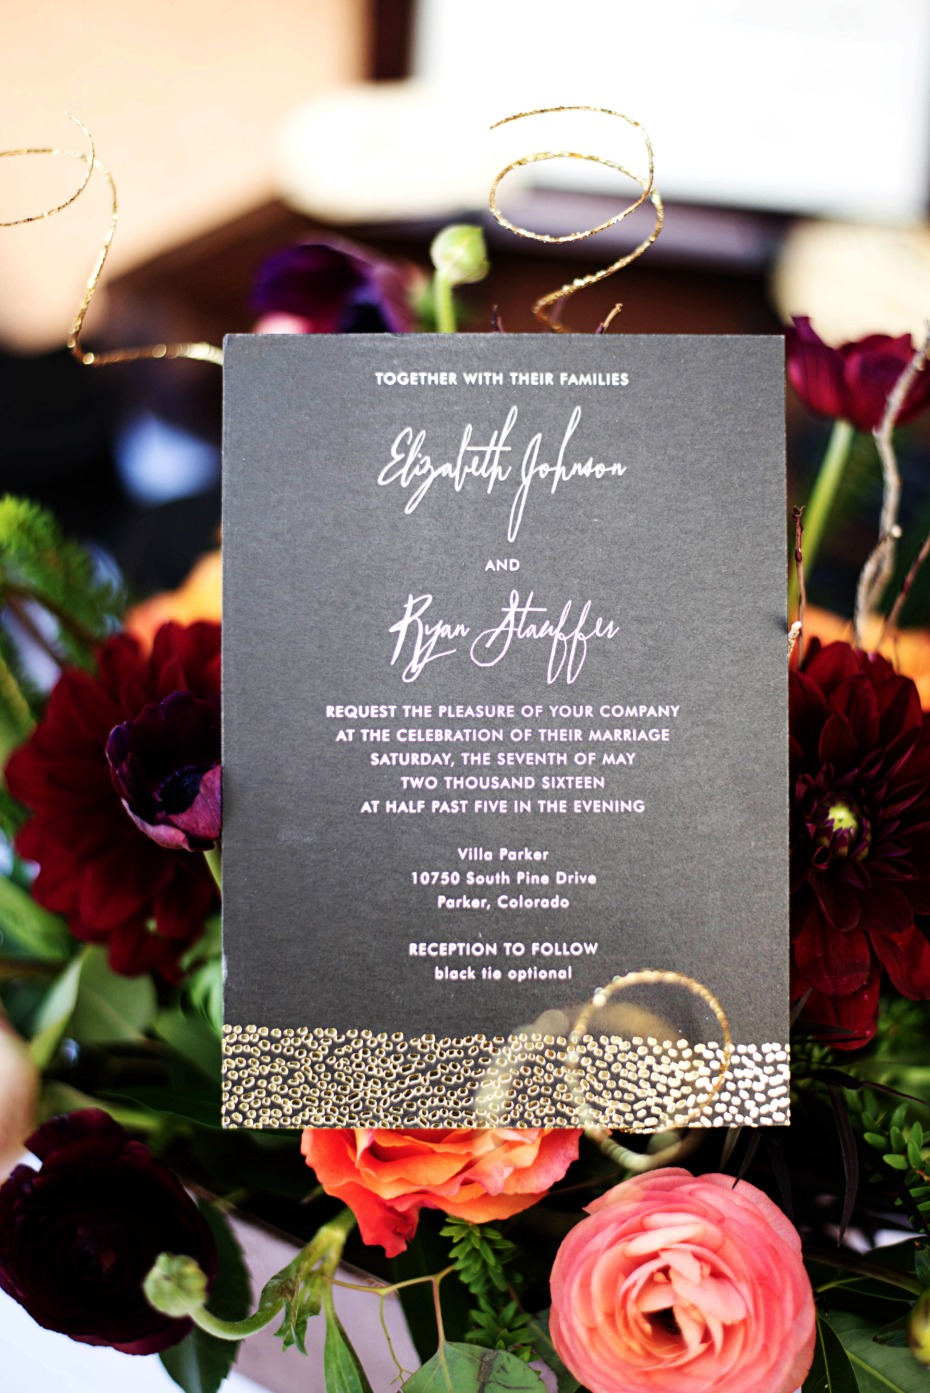 wedding invitation in black and gold